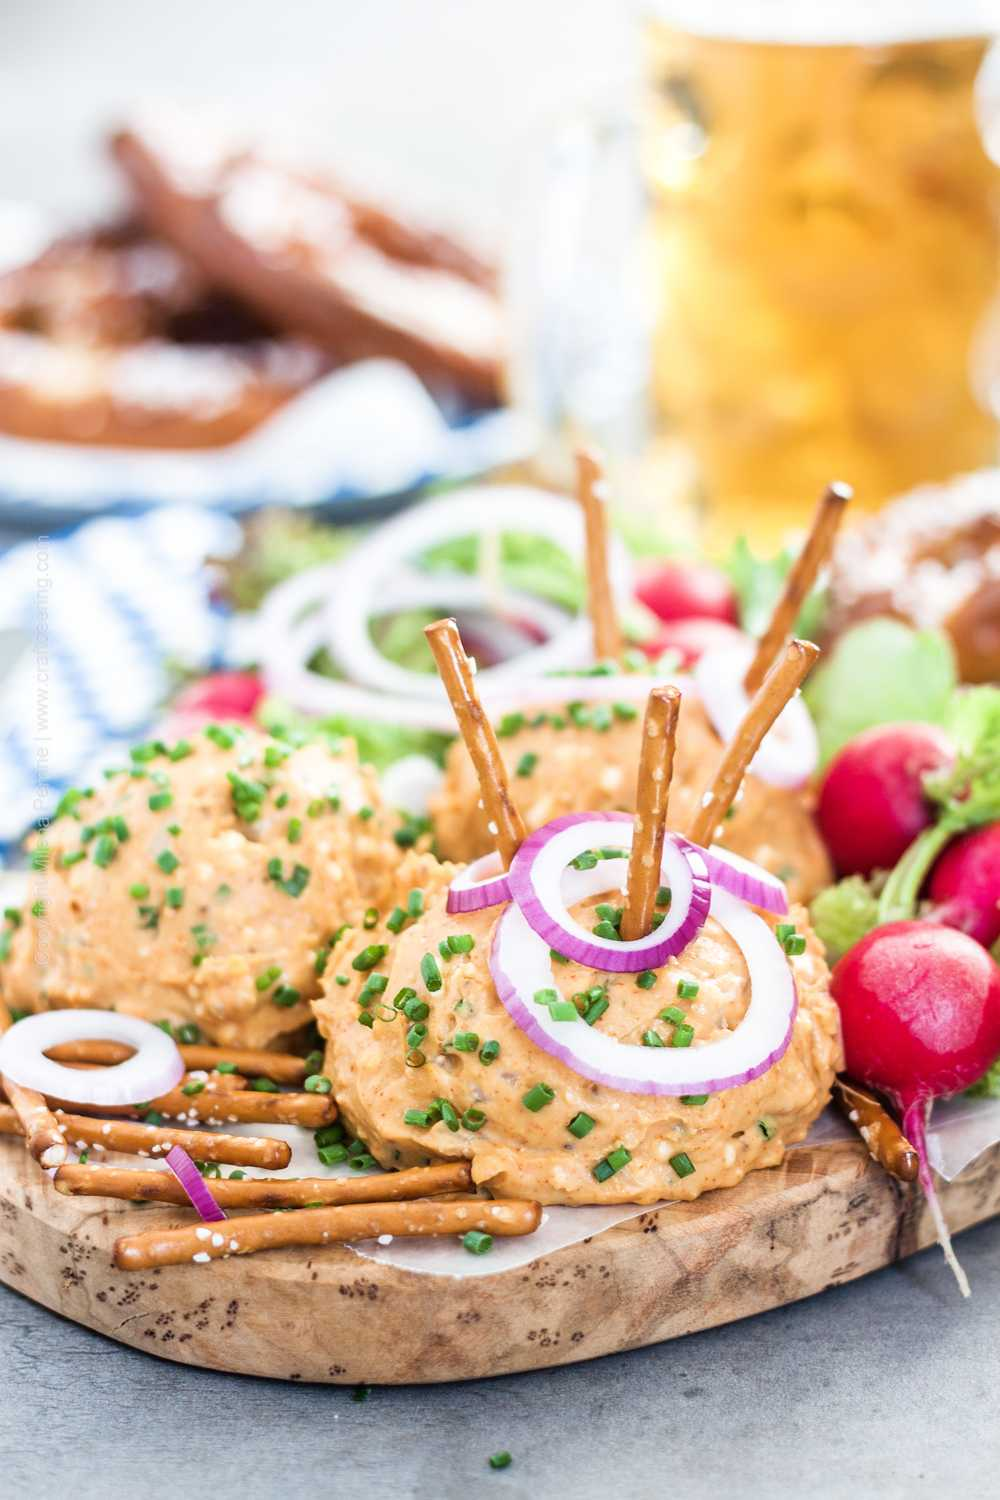 Obatzda cheese dip balls with pretzels, radishes, onions and Bavarian lager.